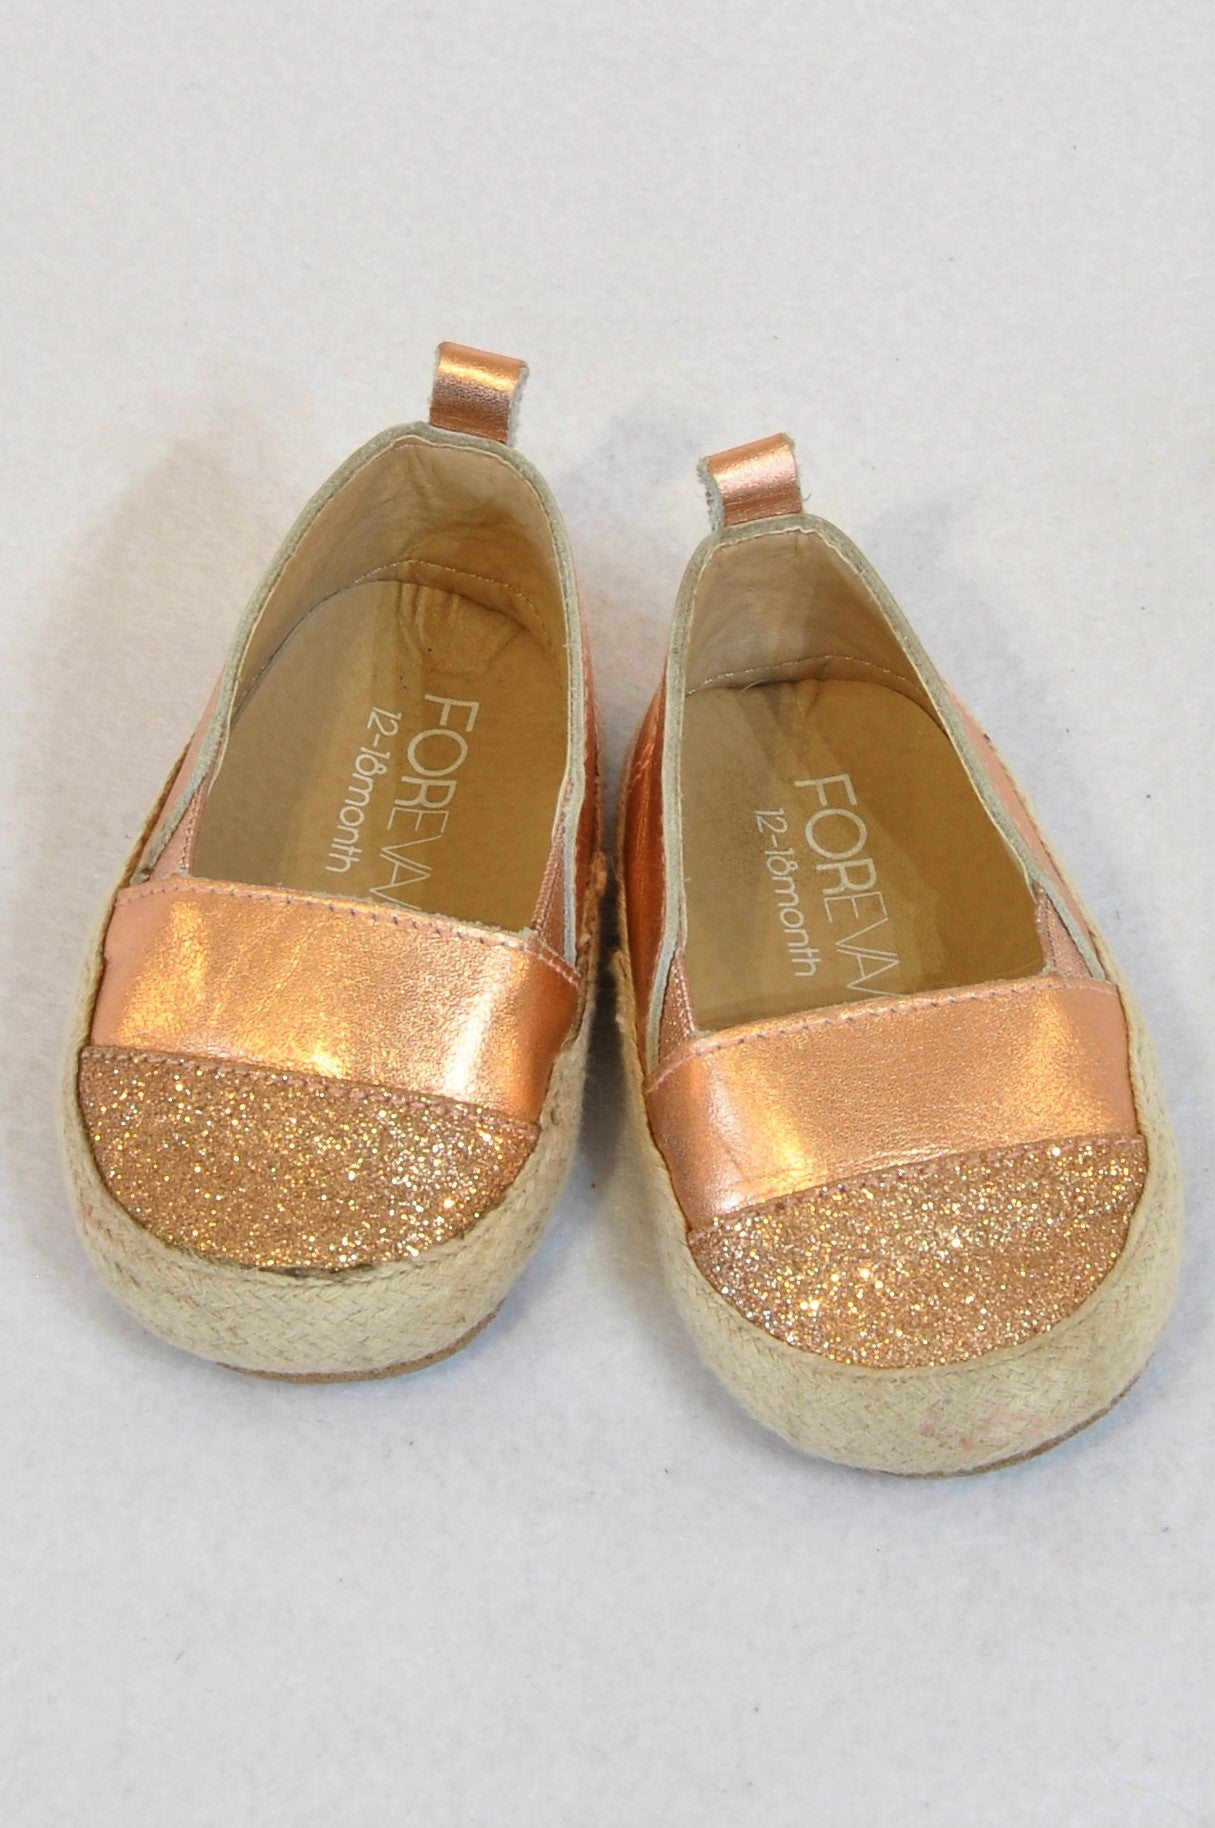 Forevav Size 3 Rose Gold Leather Espadrille Shoes Girls 9-12 months